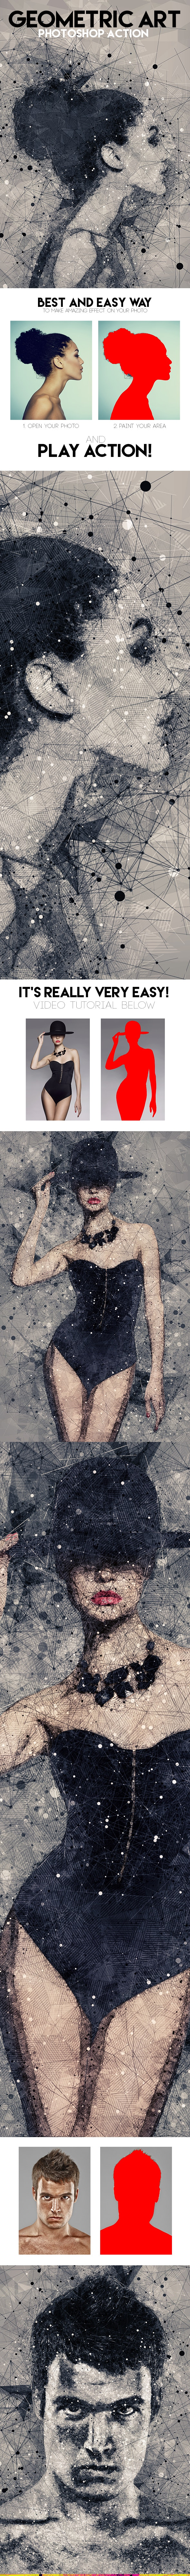 Geometric Art Photoshop Action - Photo Effects Actions